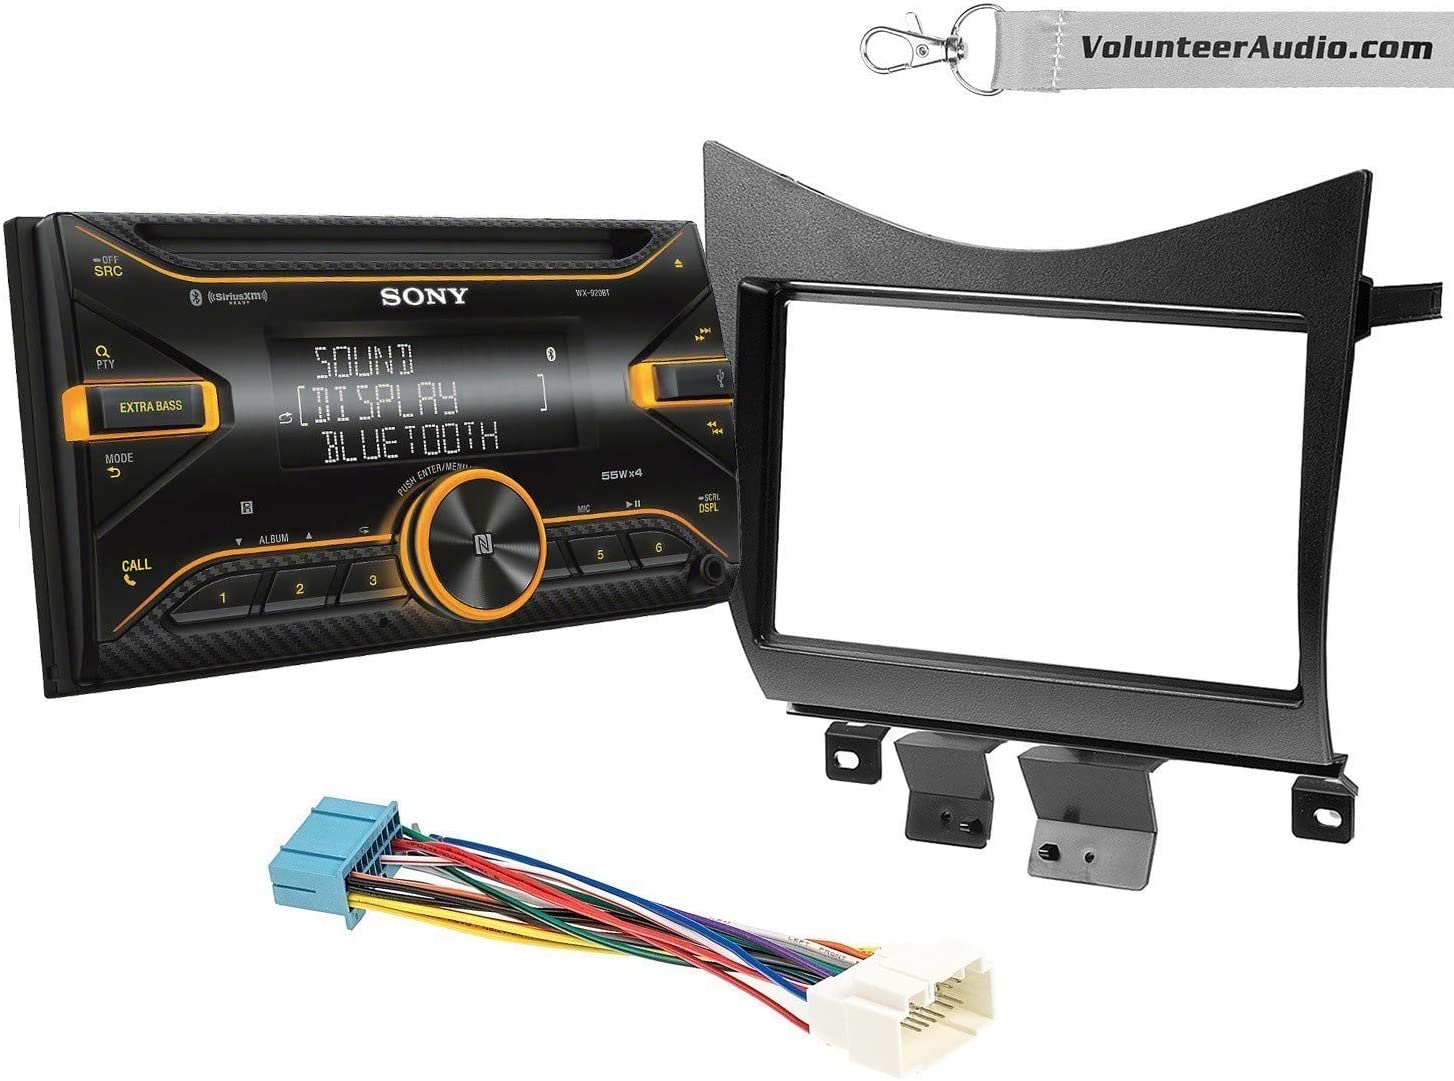 Sony WX-920BT Double Din Radio Install Kit With Sirius XM Ready, USB/AUX, CD Player Fits 2003-2007 Accord